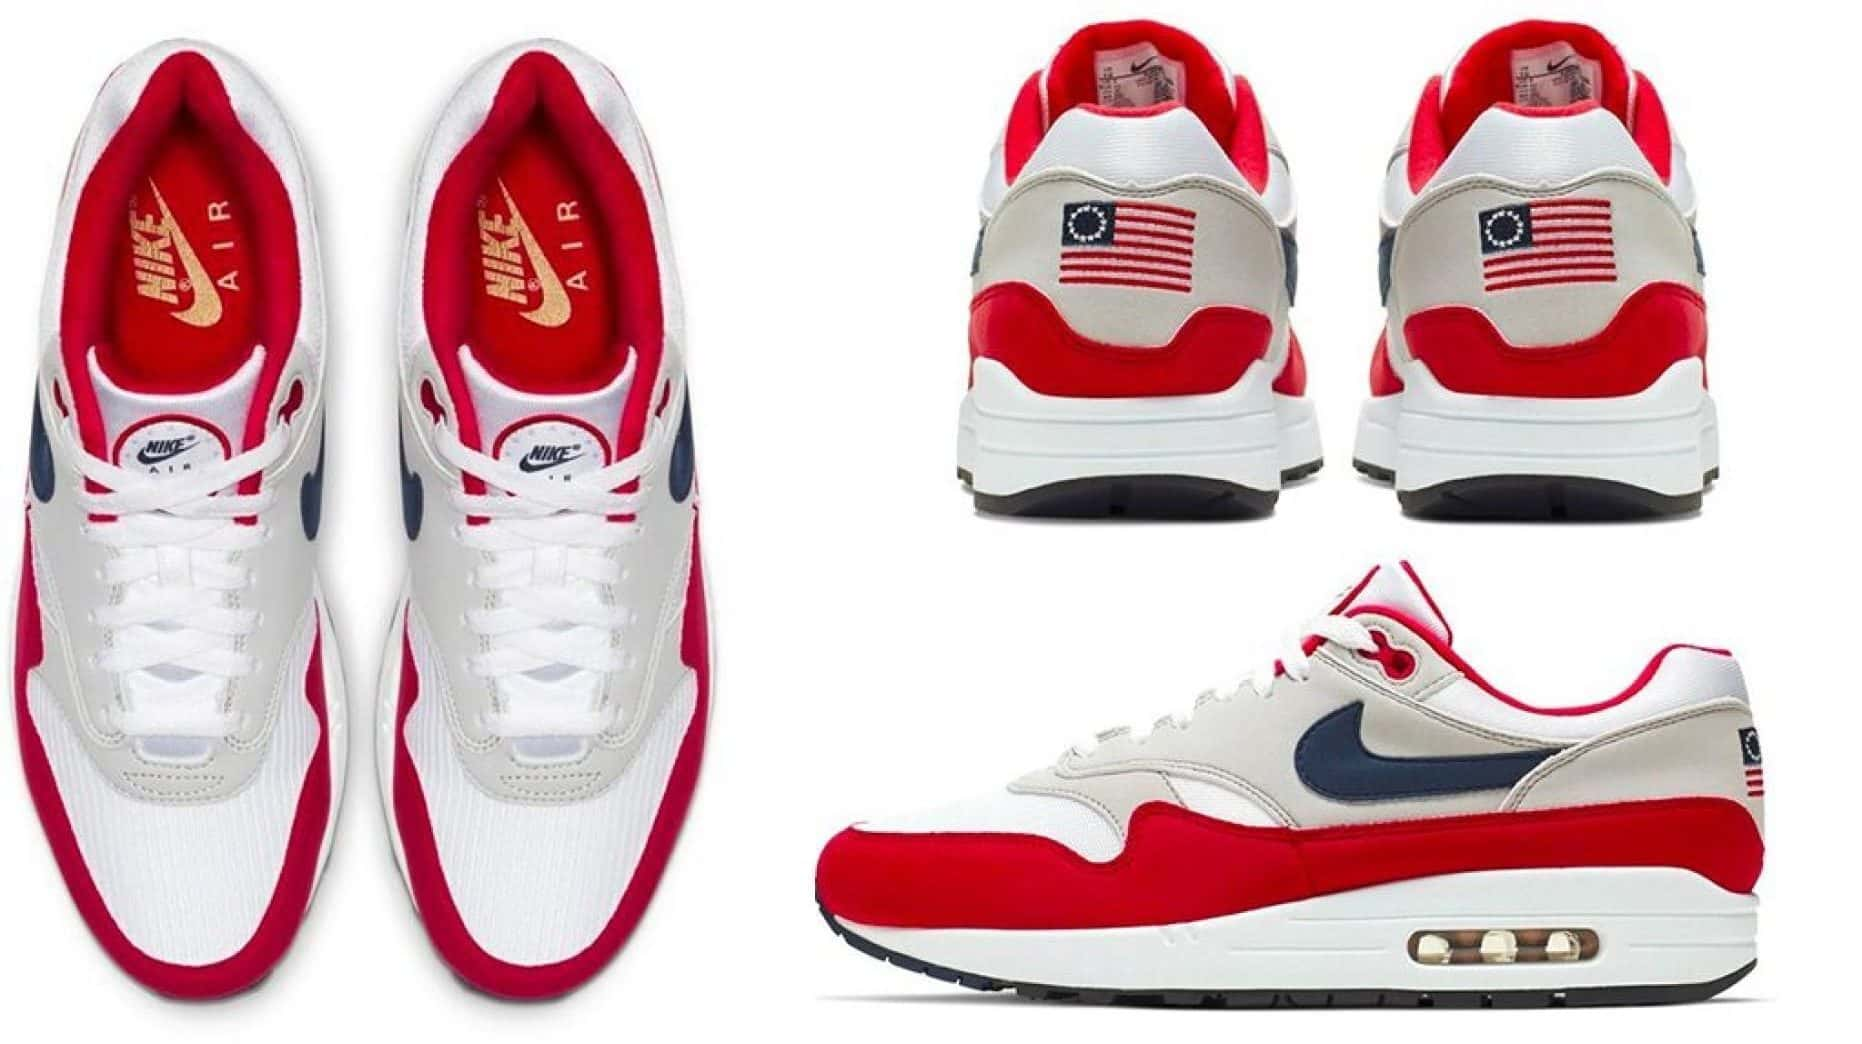 Shoemaker Launches Own Betsy Ross